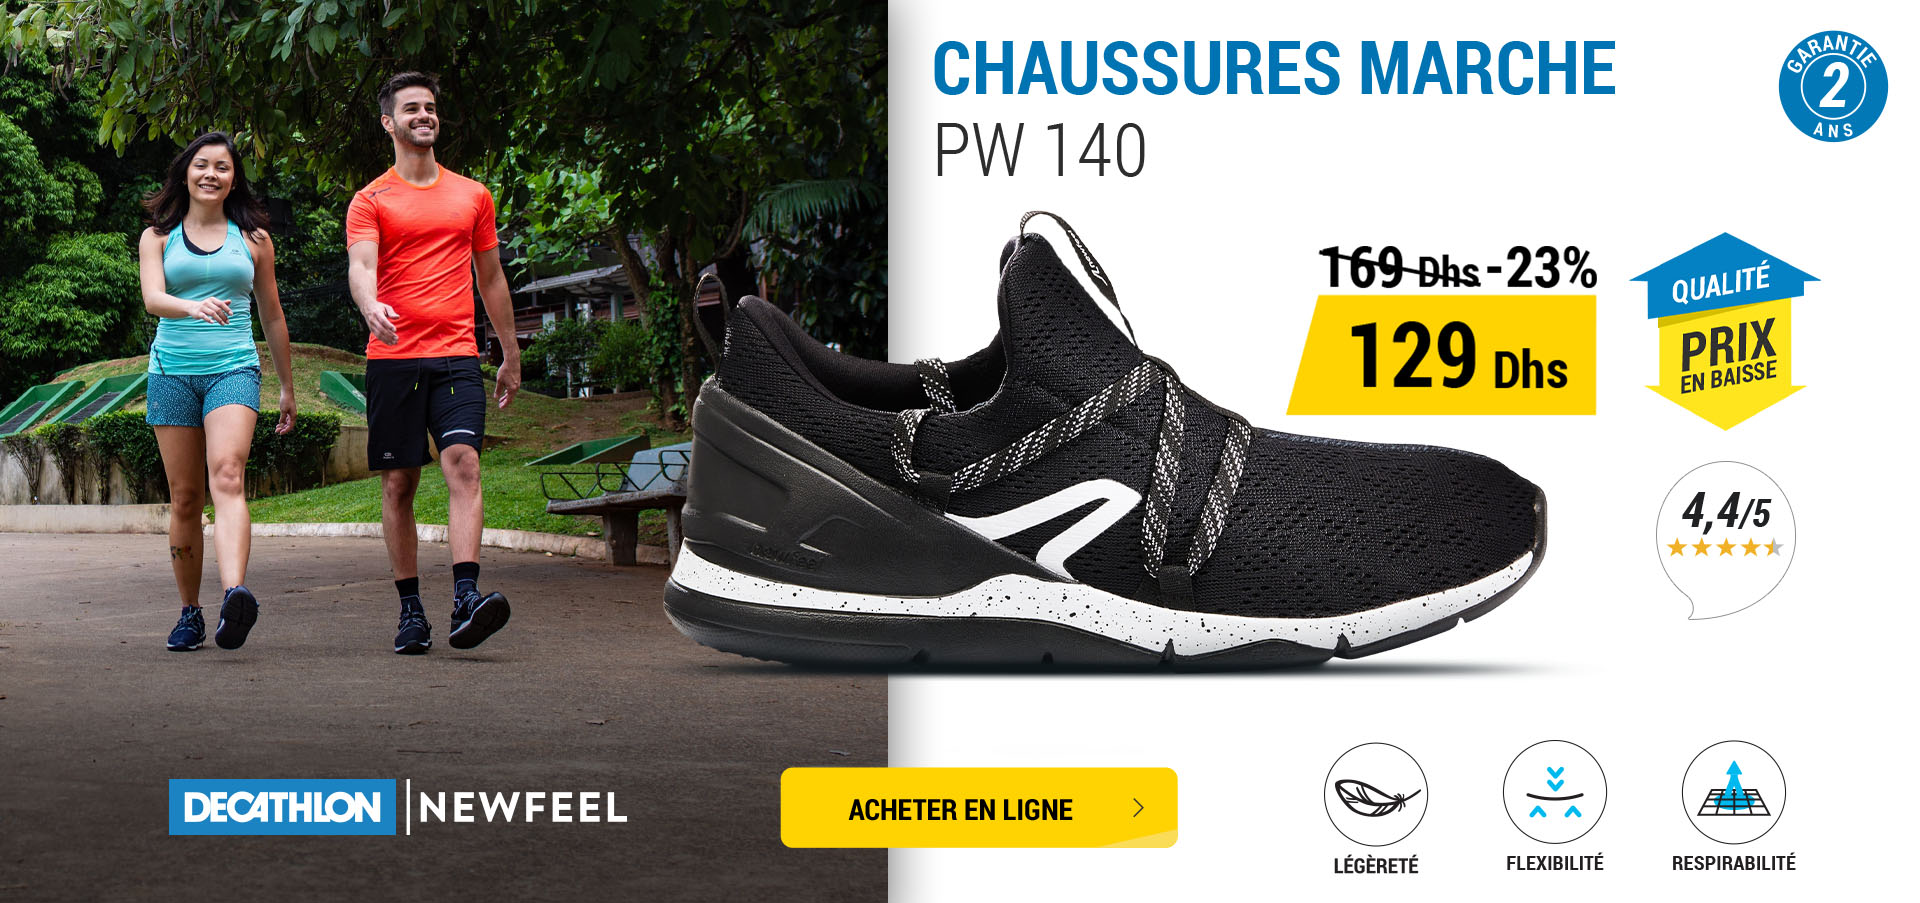 Chaussure marche solde